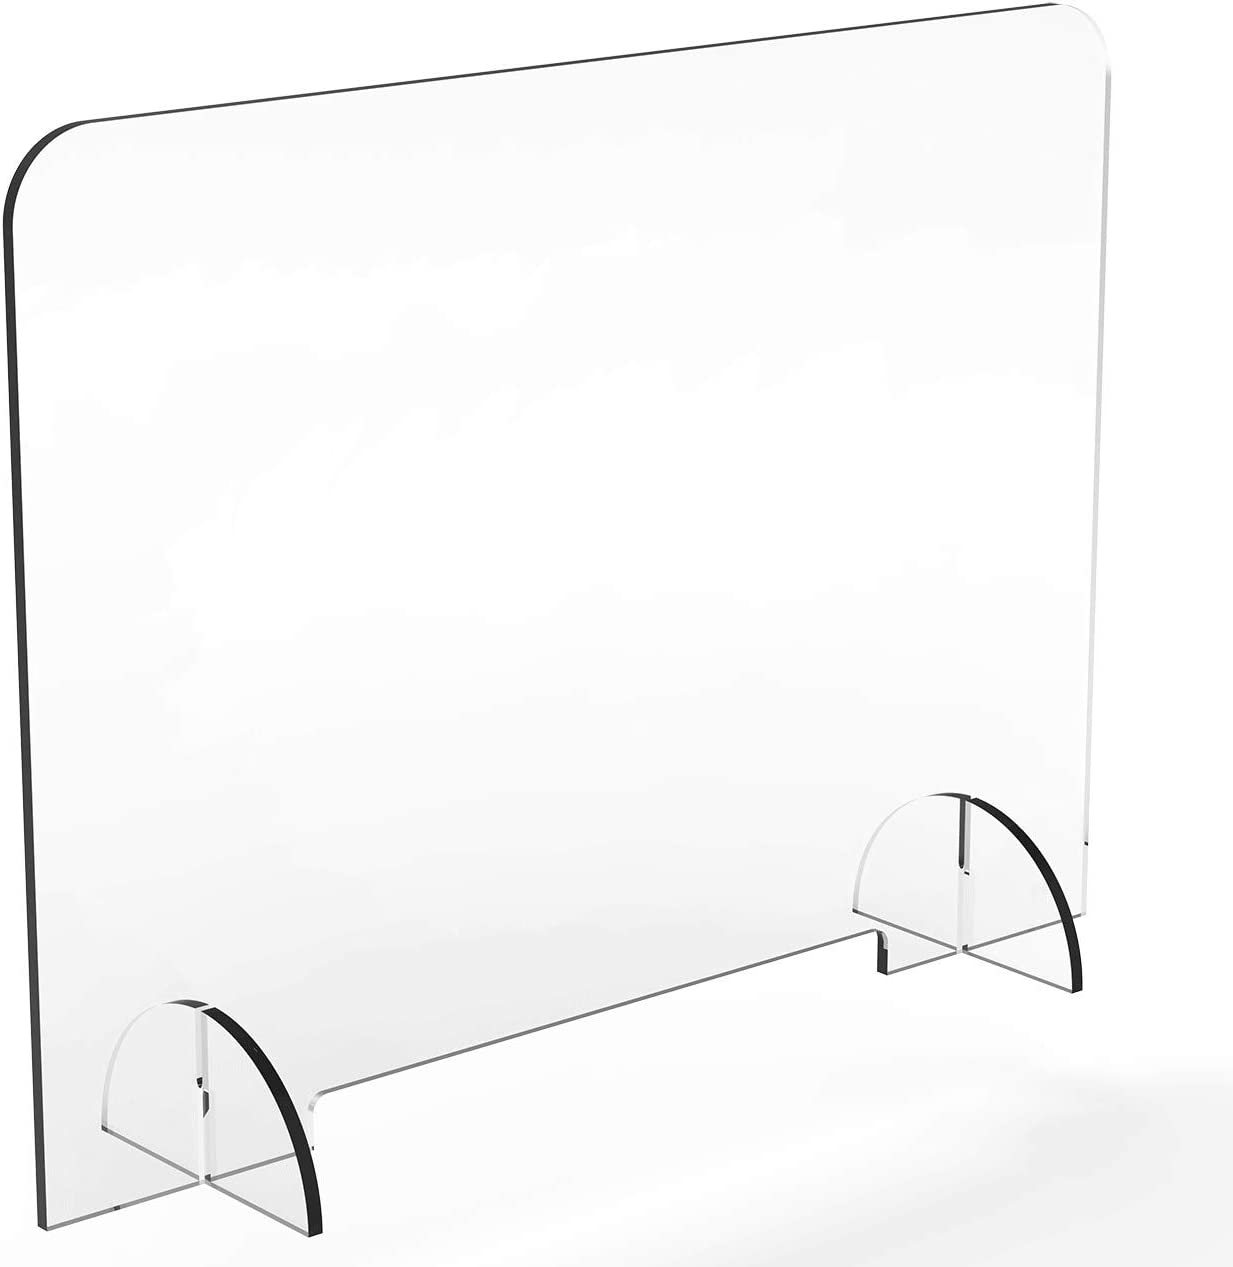 "Plastic Sneeze Guard for Counter and Desk – Quality American 1/4 inch Thick Acrylic– with Small Opening - 1.5"" Tall Opening (32"" Wide x 32"" Tall 1/4"" Thick)"